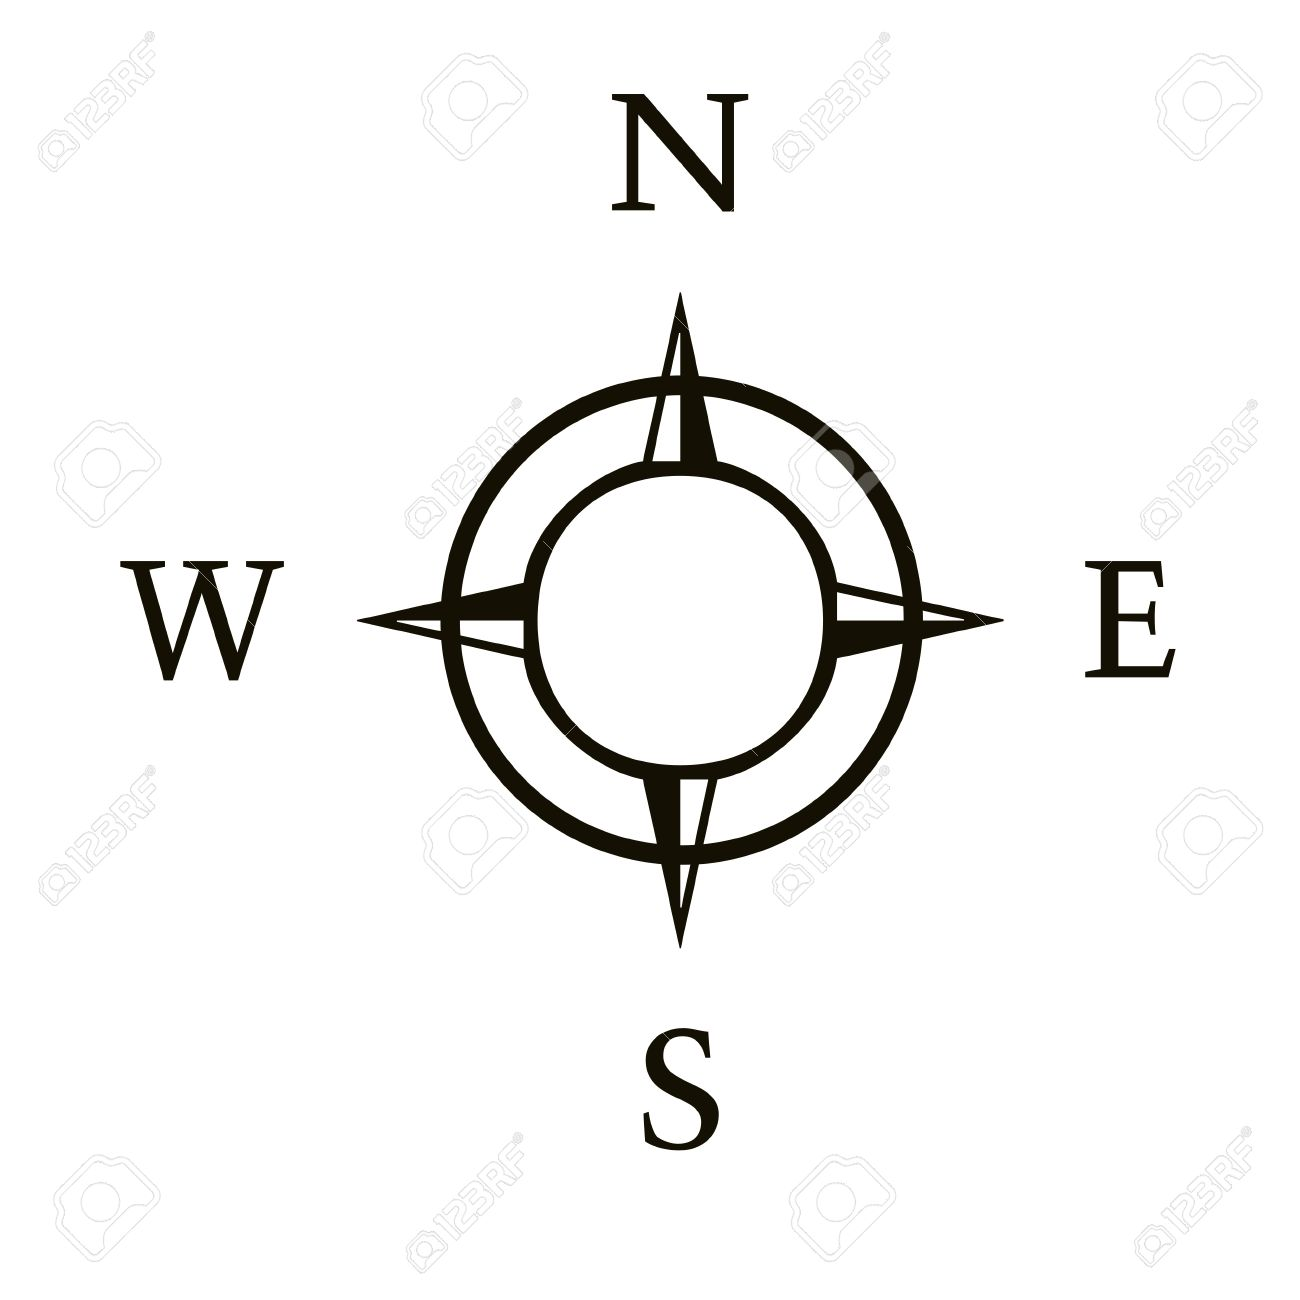 1300x1300 Compass Clipart North South East West